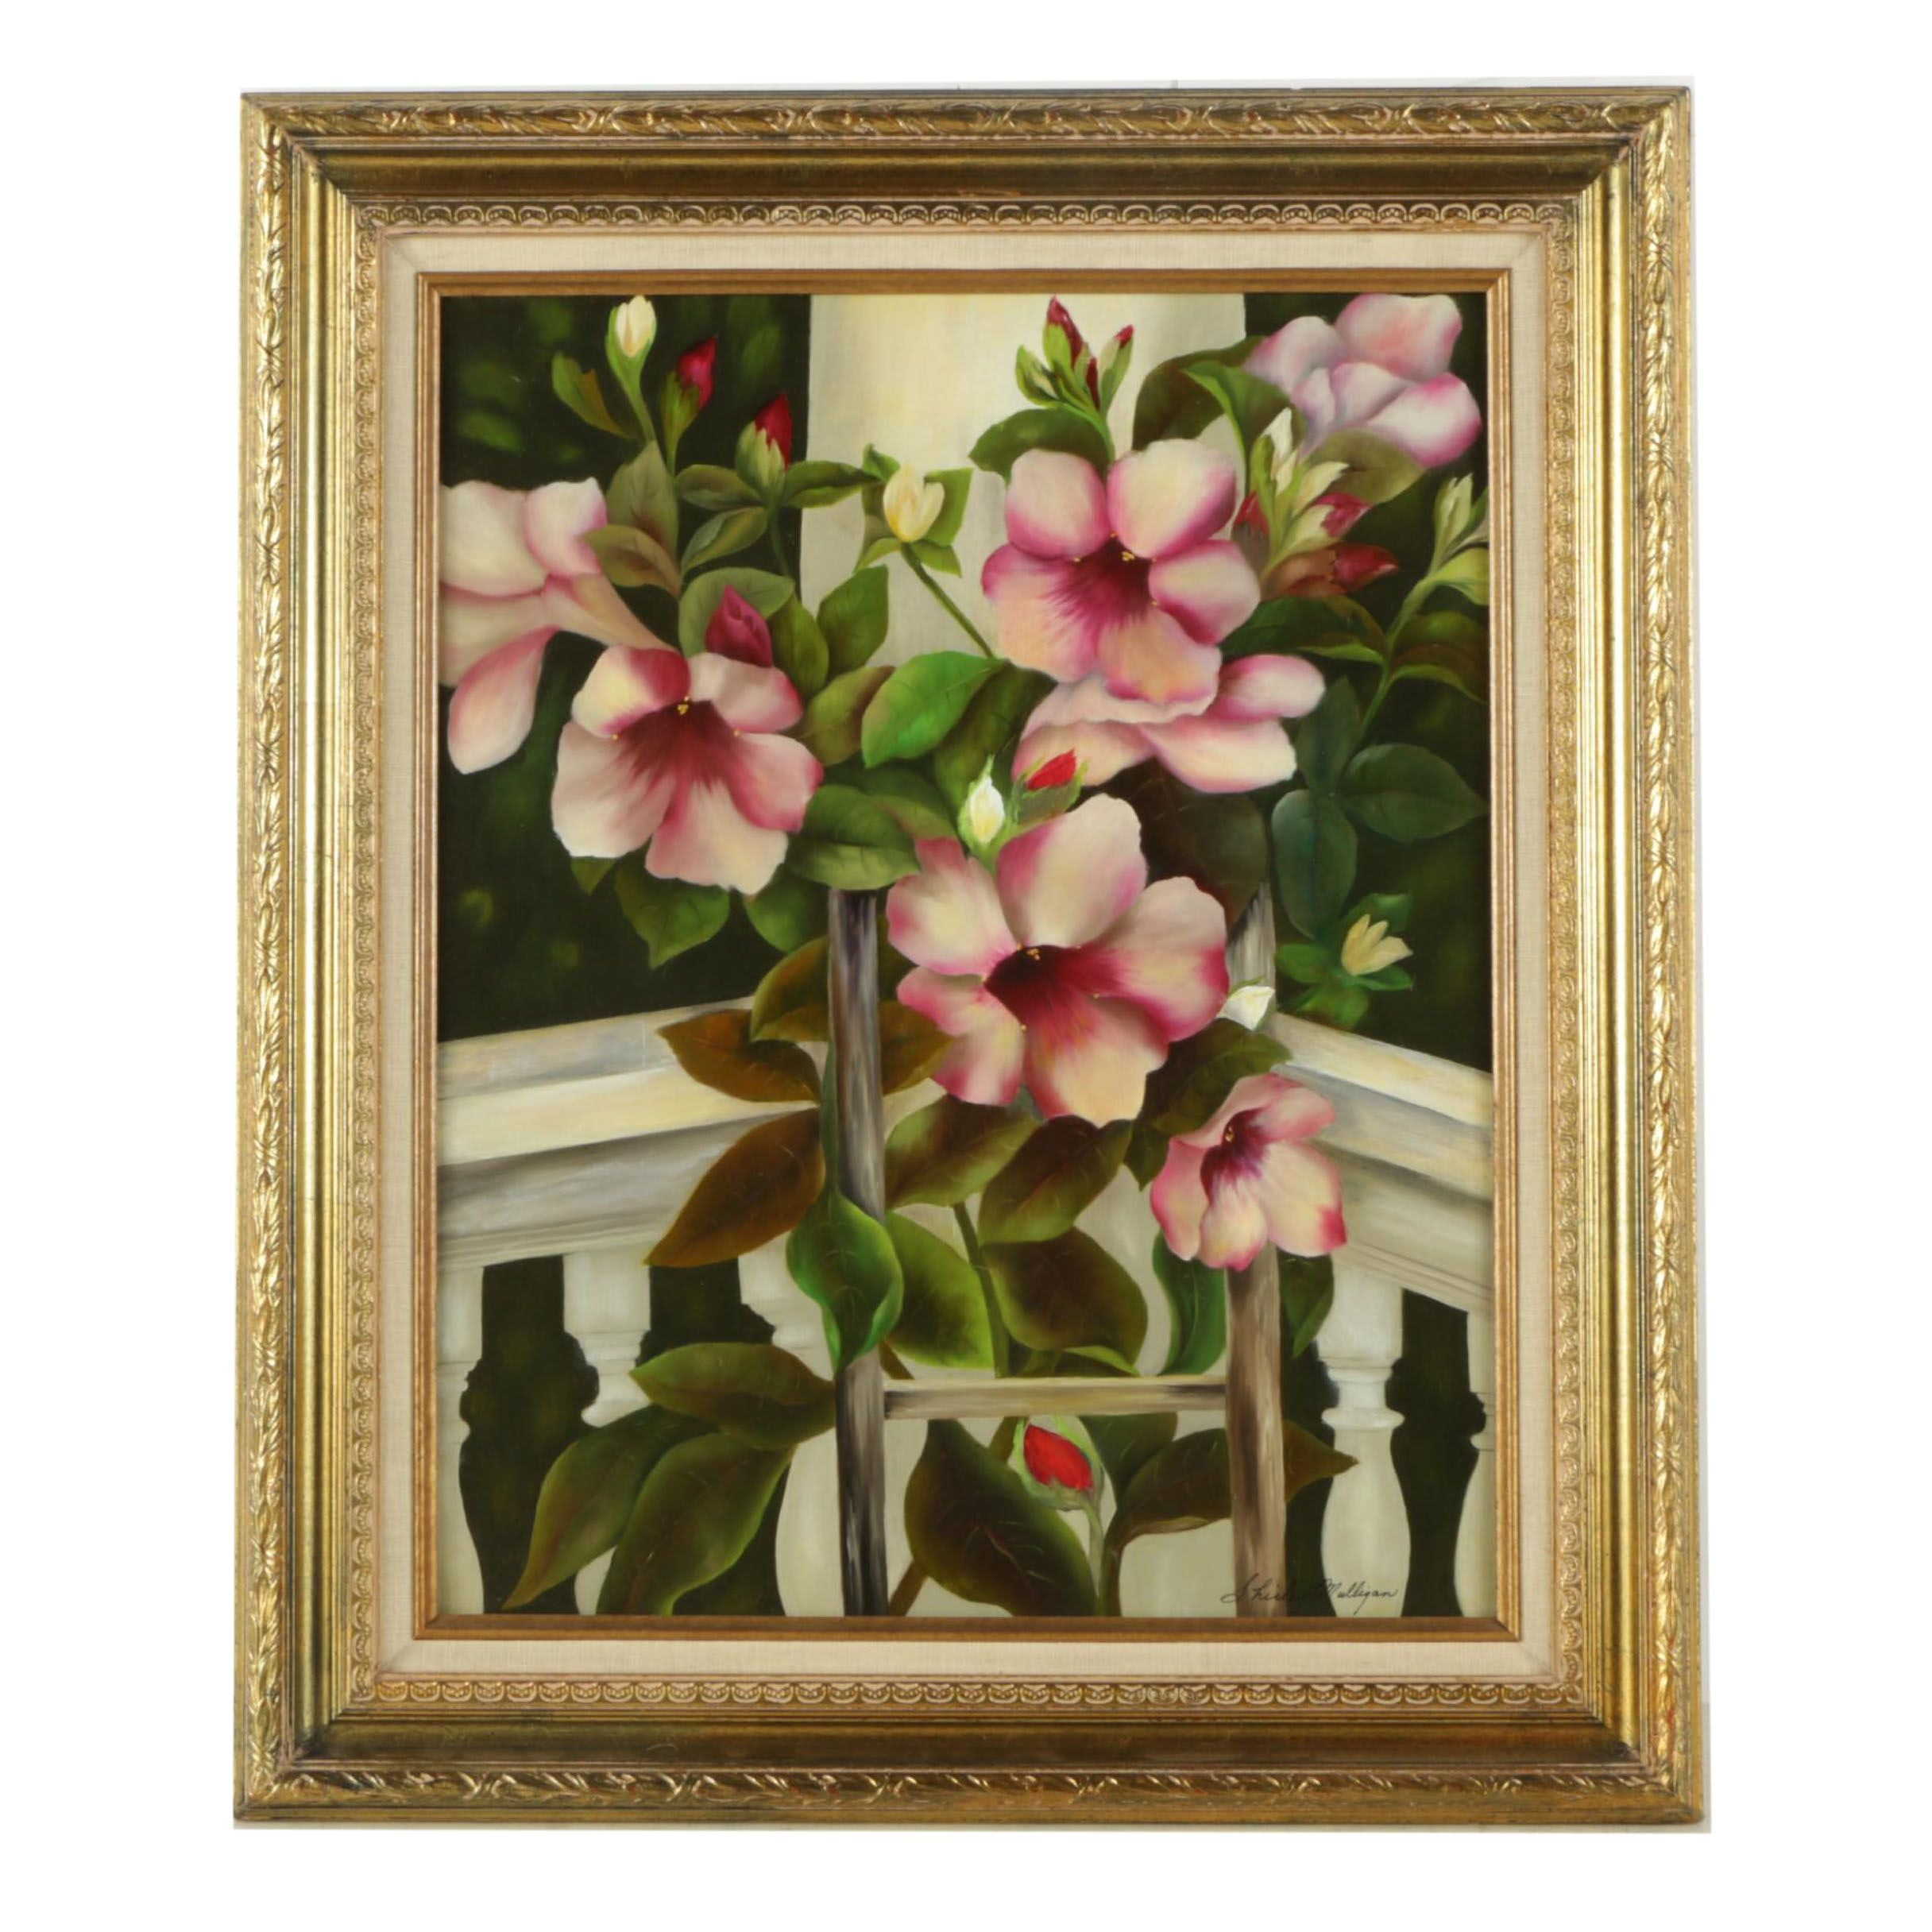 Shirley Mulligan Oil Painting on Board of Pink Flowers